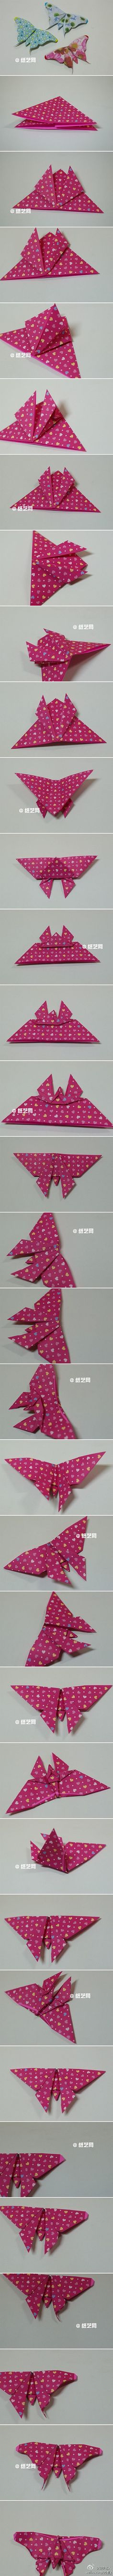 Handmade DIY origami paper cutting handmade paper art origami butterfly